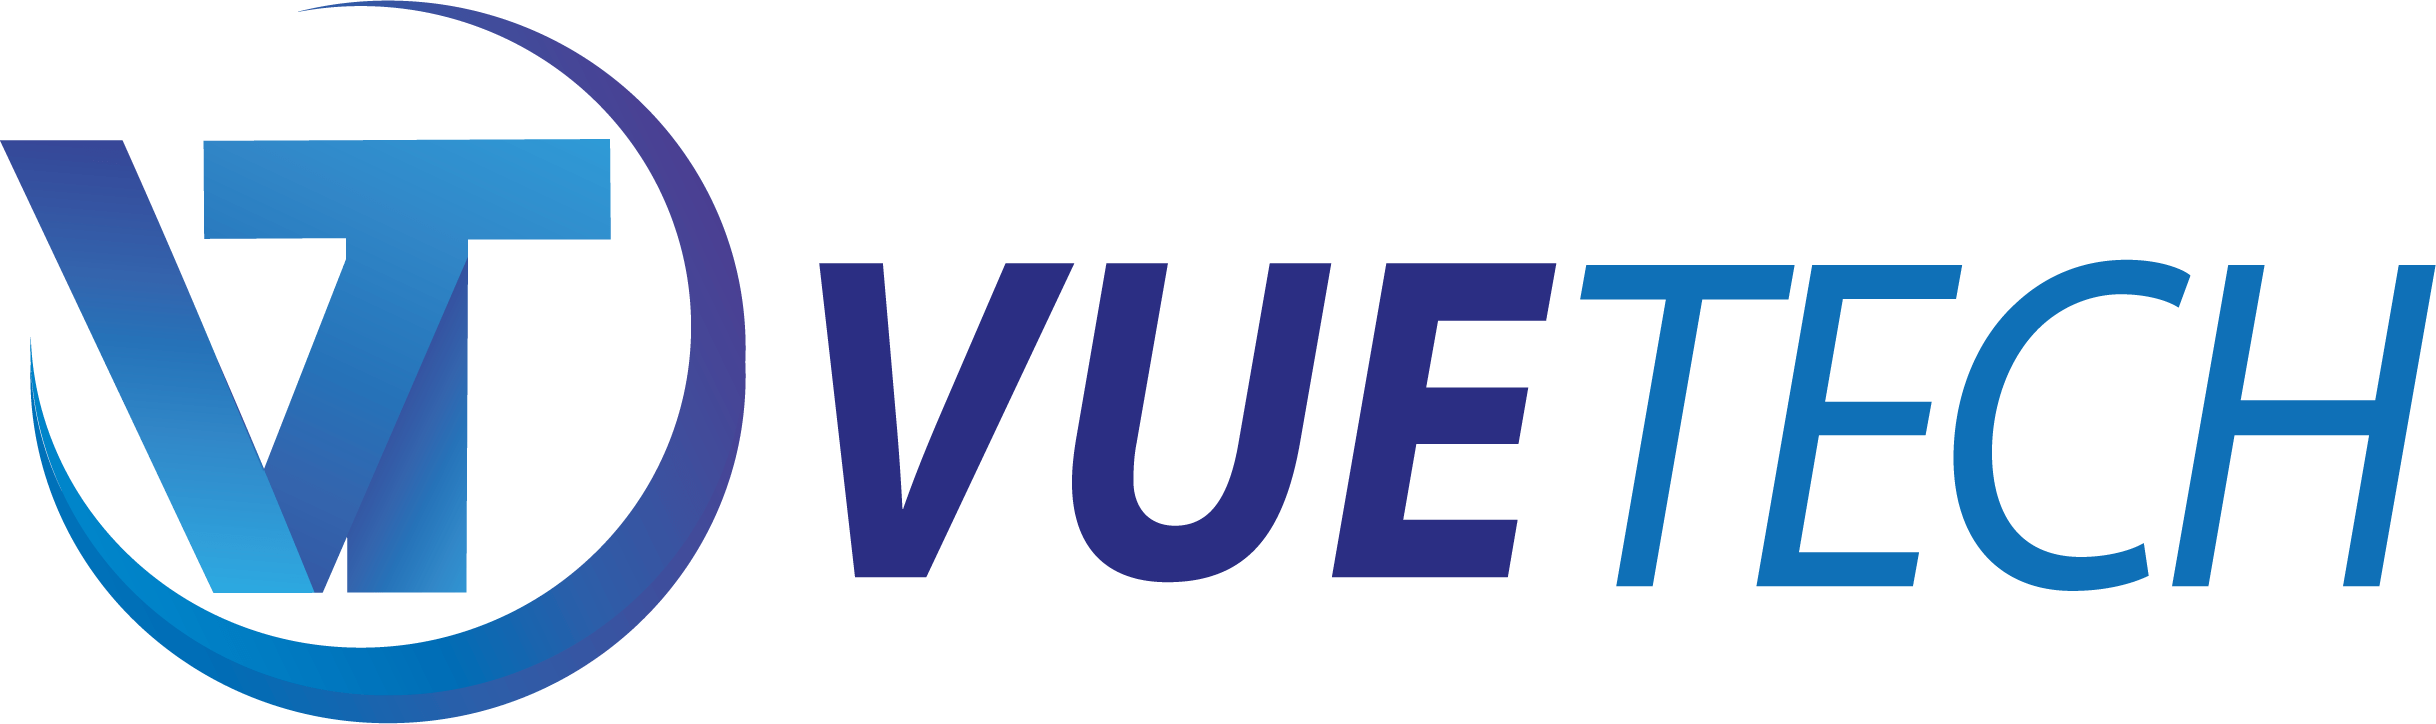 Vue Tech SG – Digital Marketing Expert